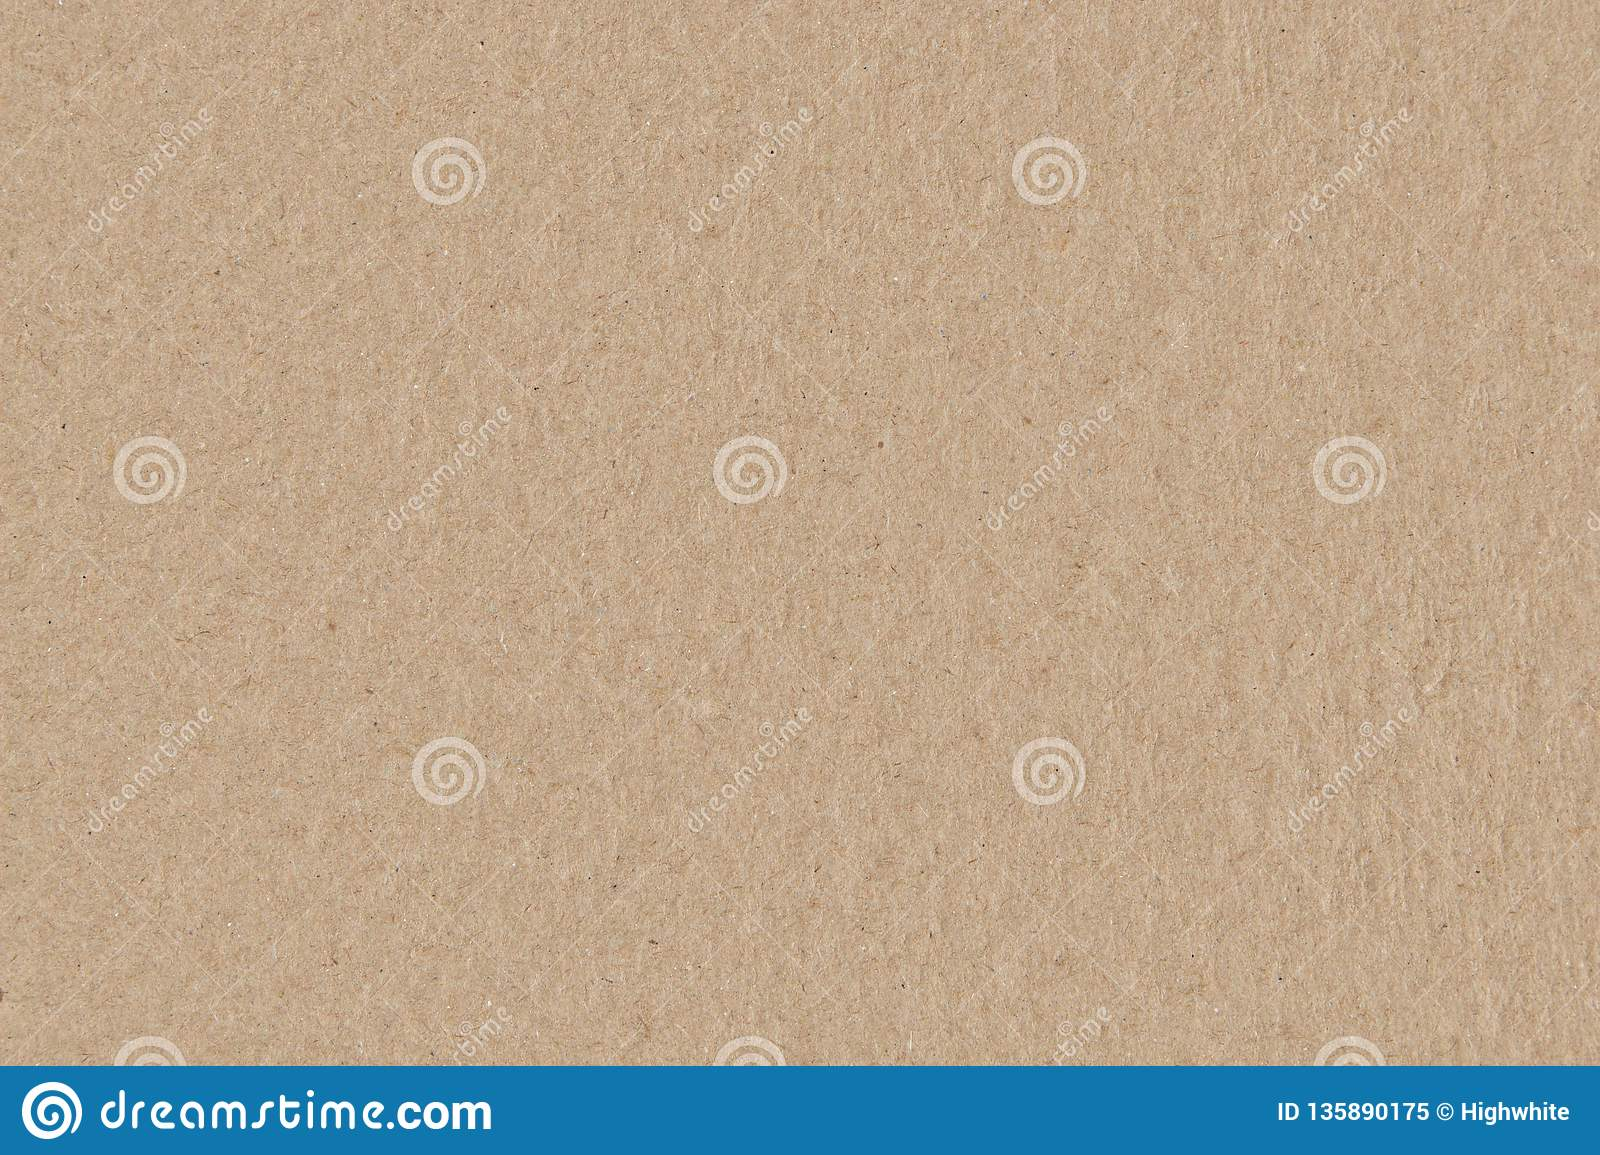 Brown cardboard seamless texture, smooth rough paper background.